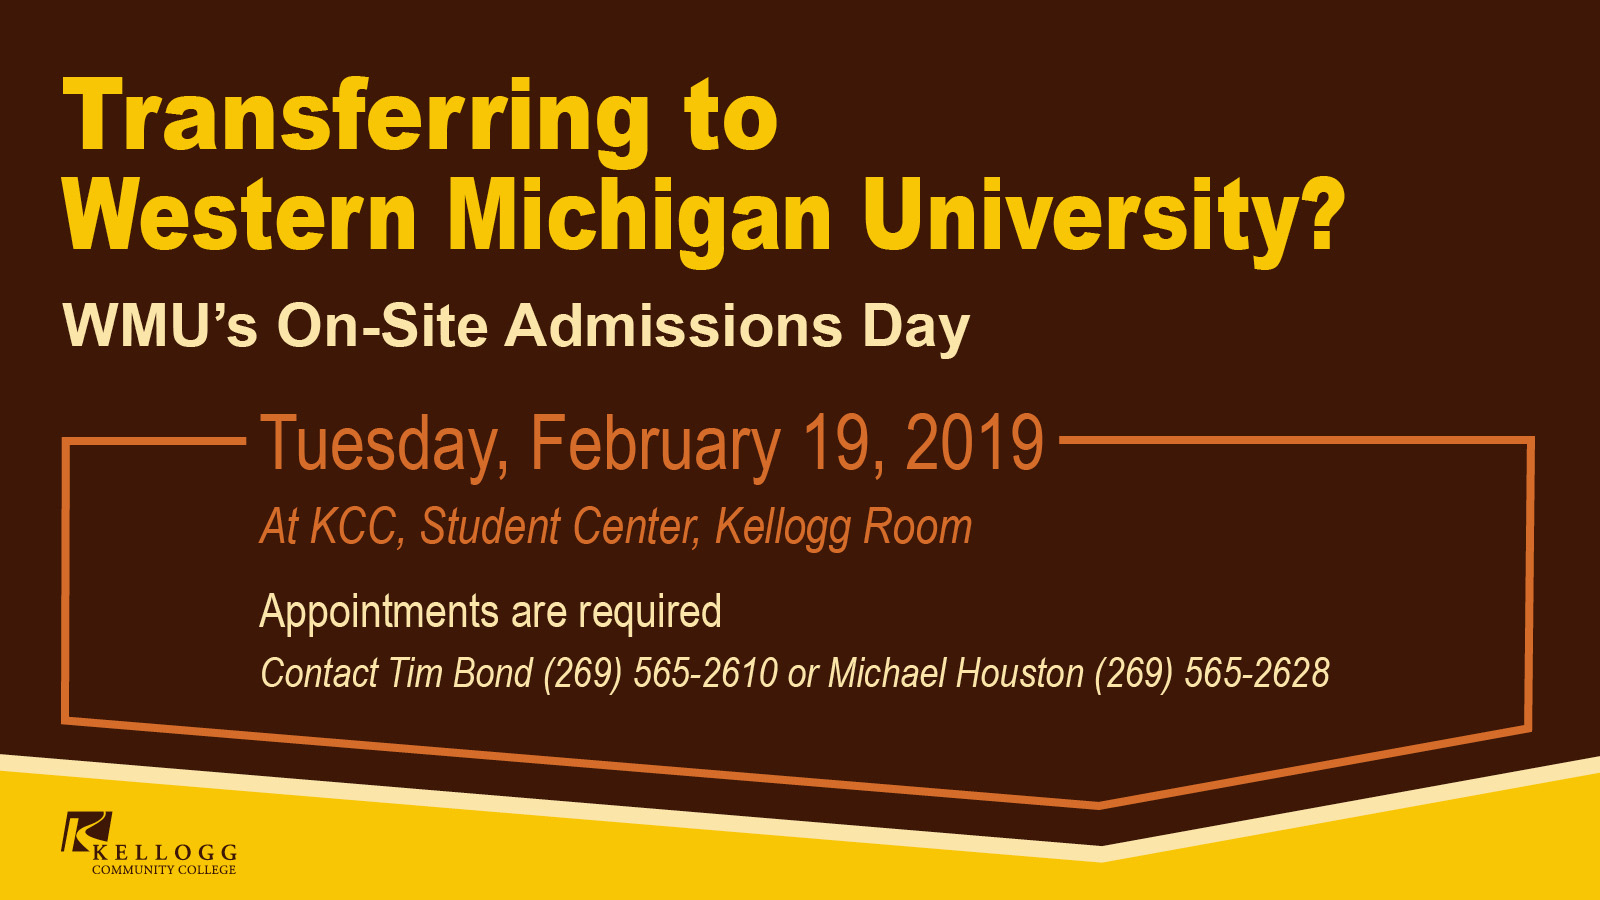 A text slide promoting KCC's WMU On-Site Admissions Day, scheduled for Feb. 19, 2019.